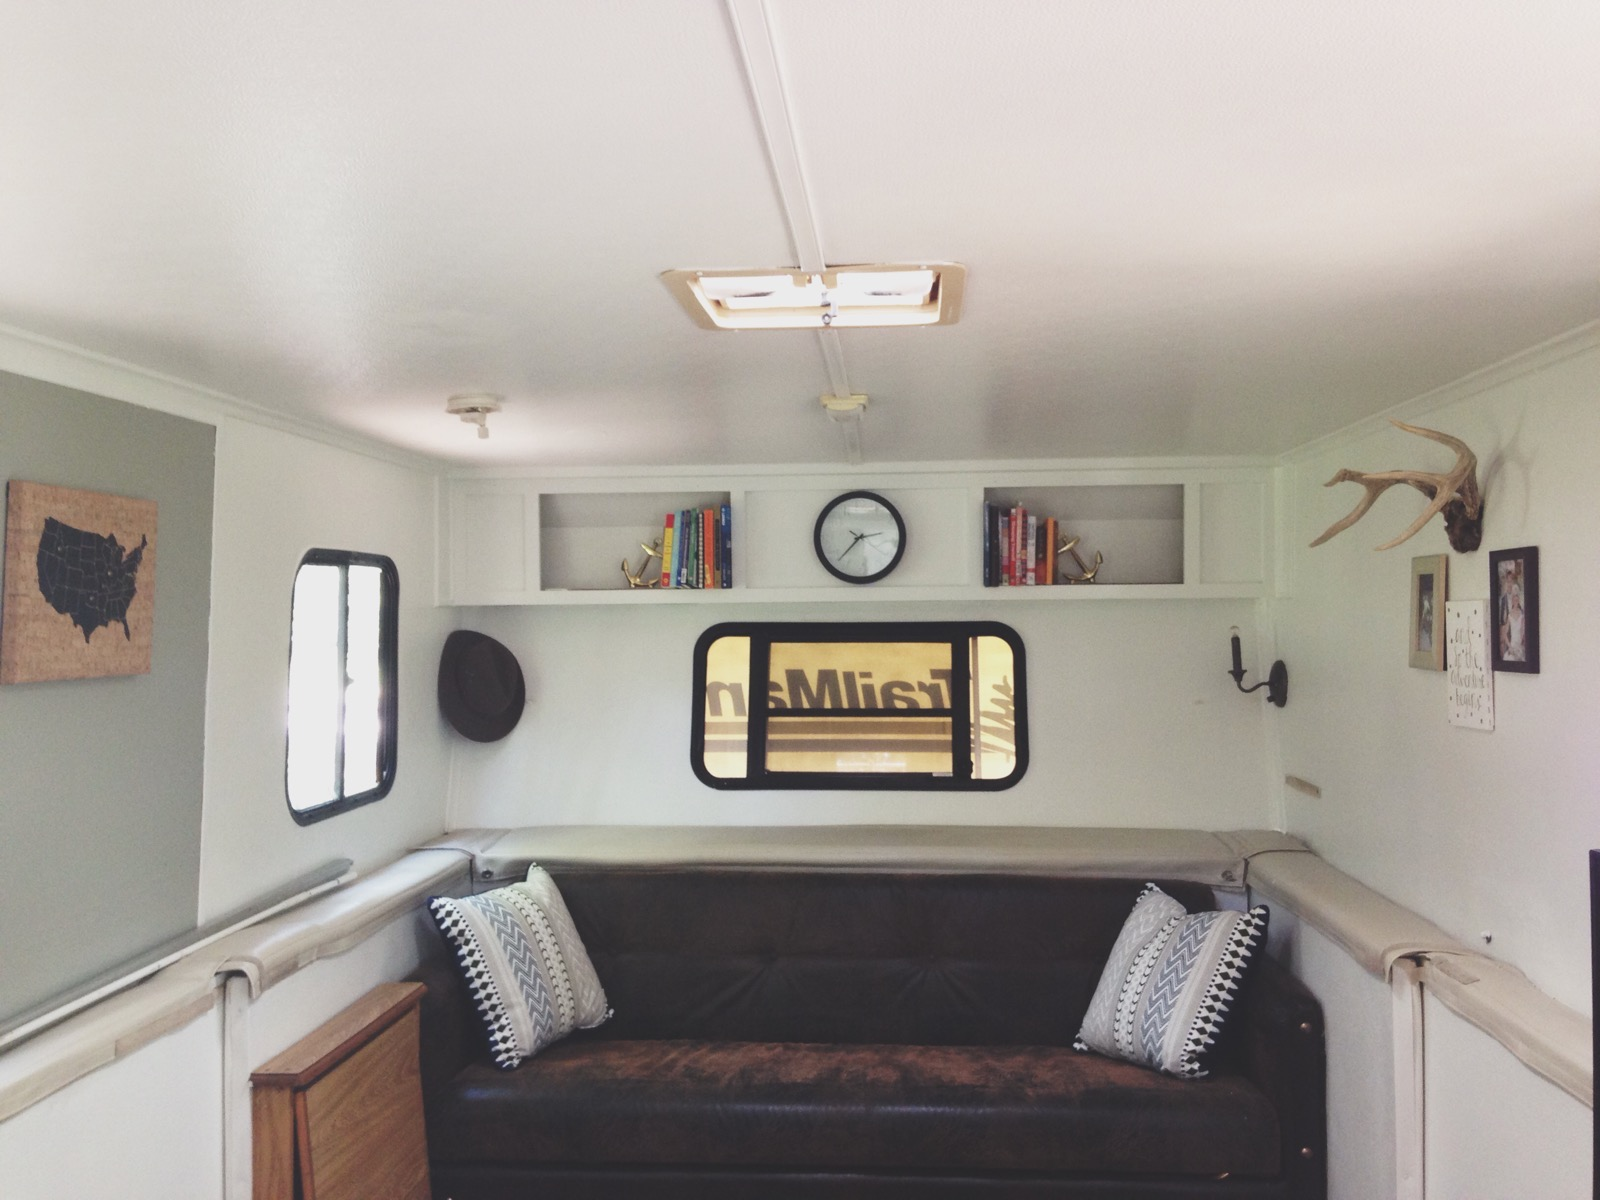 Living in a camper to pay off debt